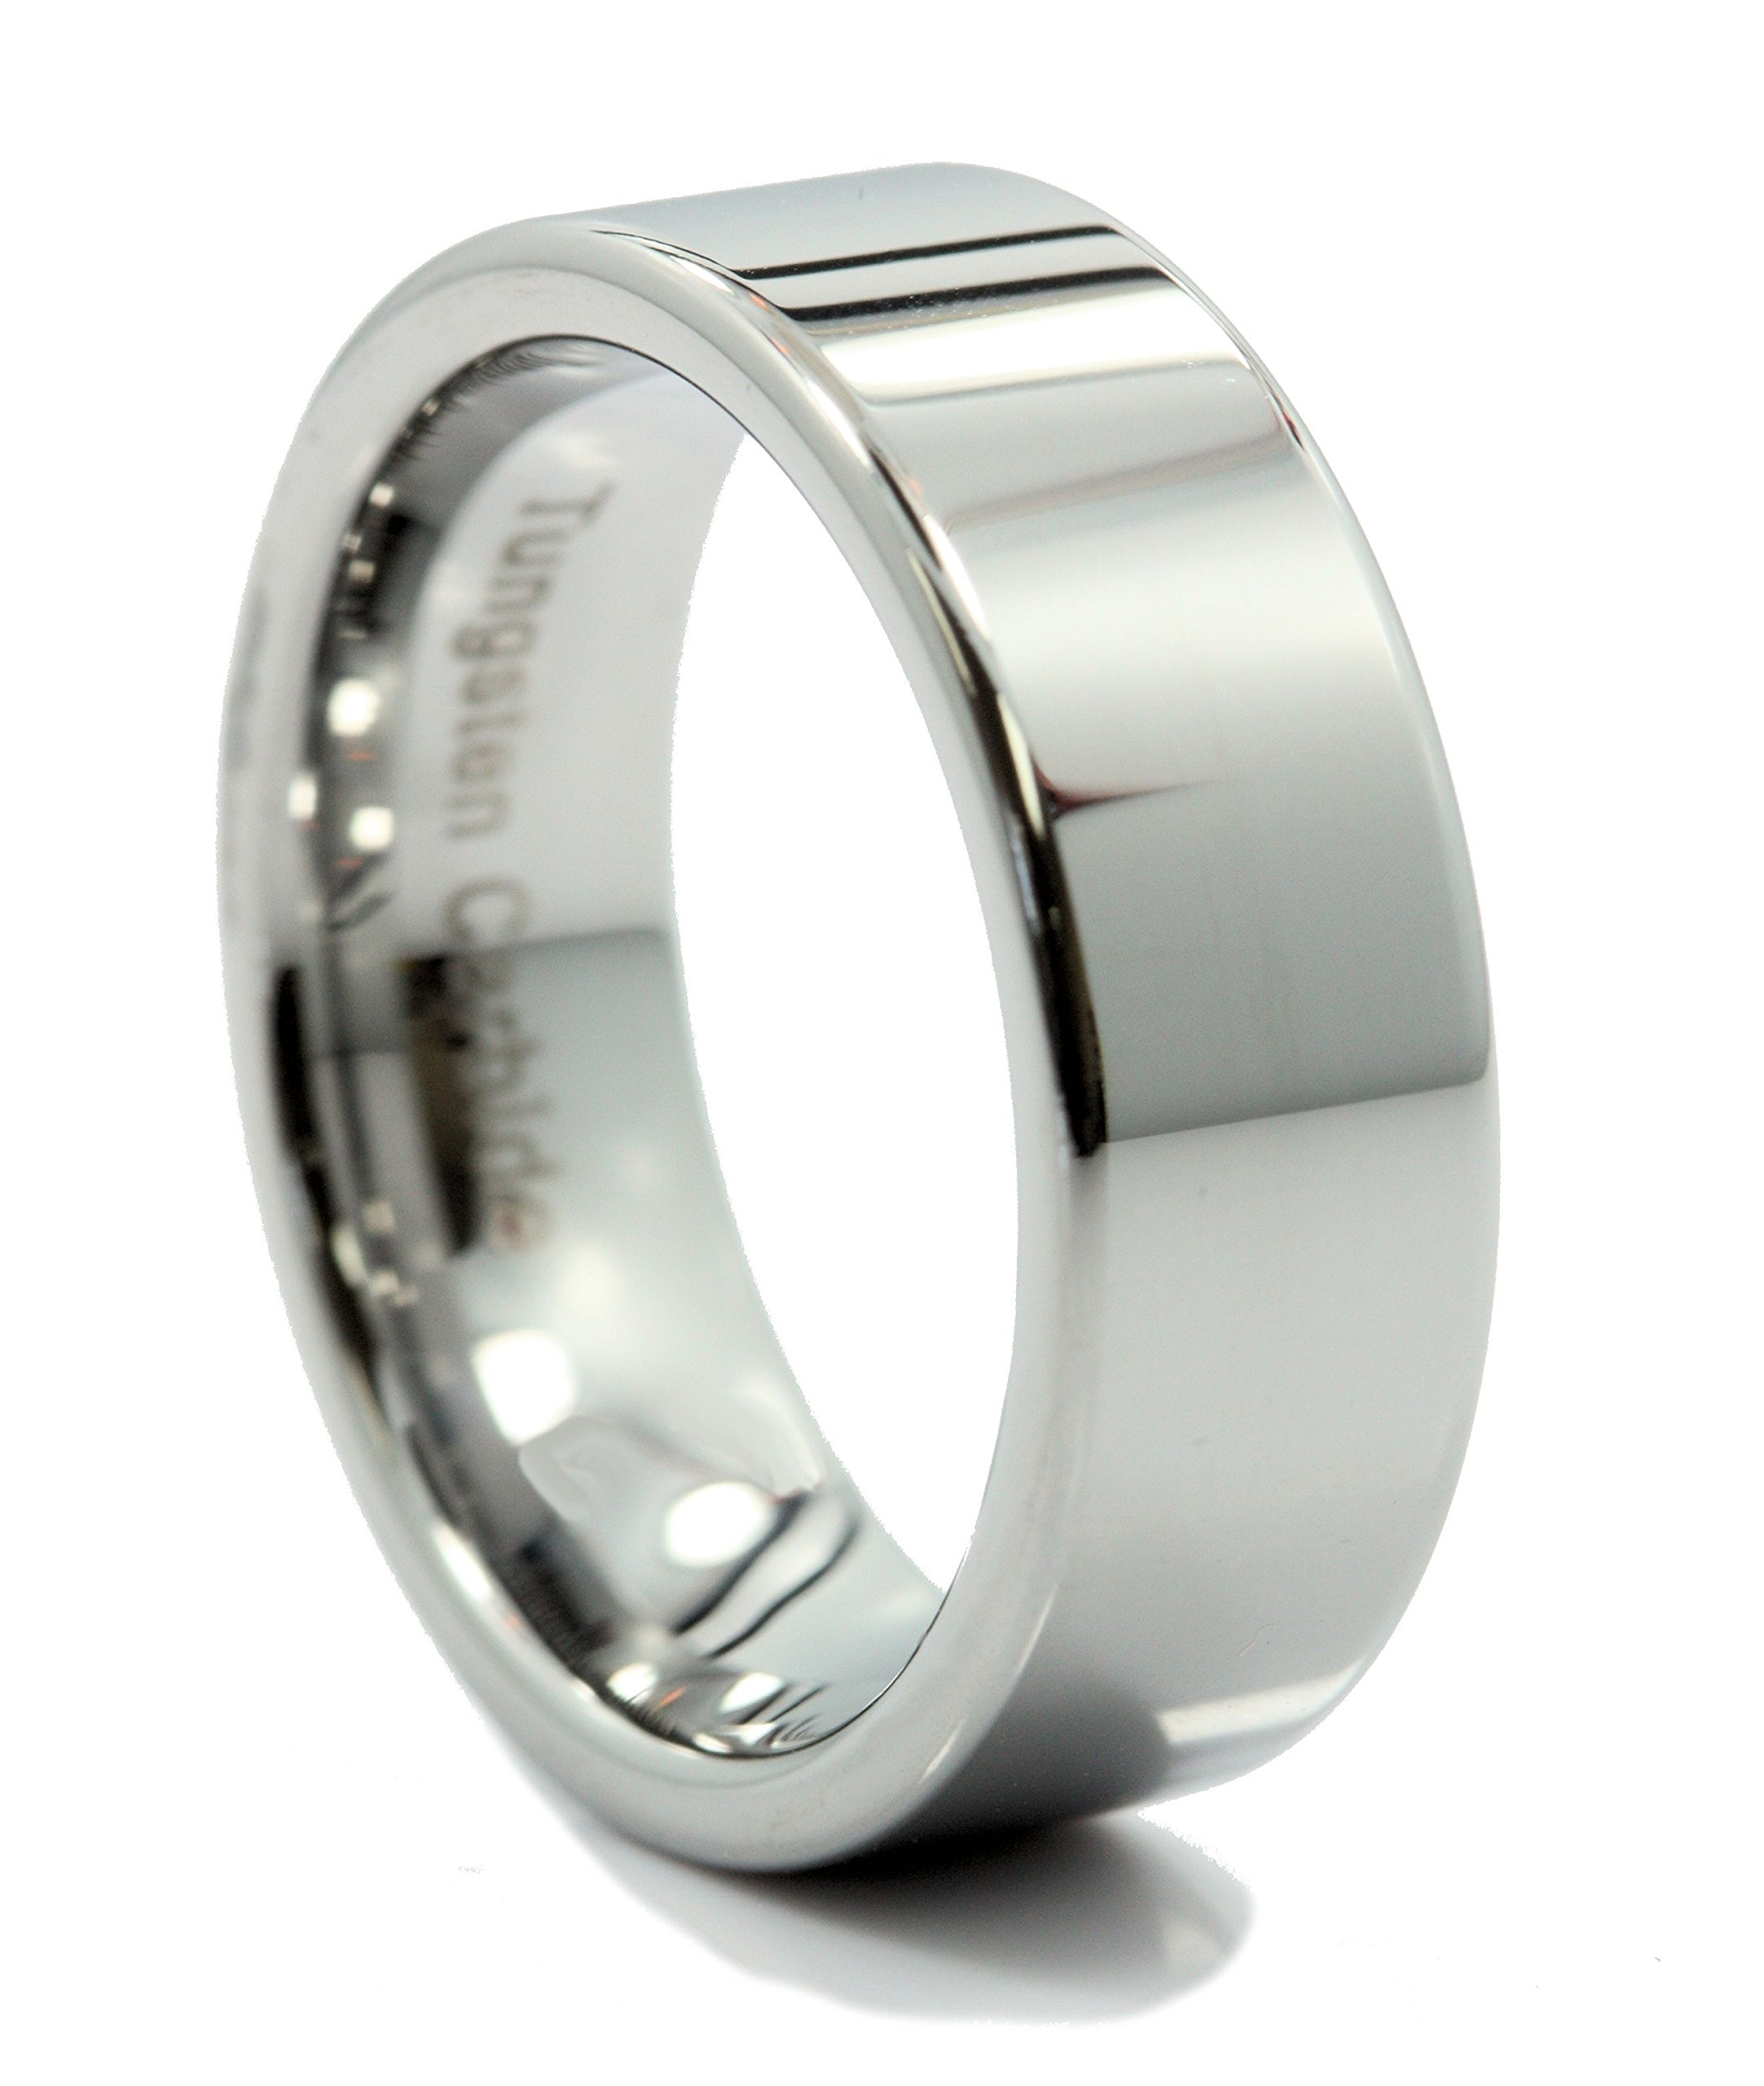 MJ Metals Jewelry 8mm Flat Pipe Cut Tungsten Carbide Wedding Band Mirror Polished Ring Size 11